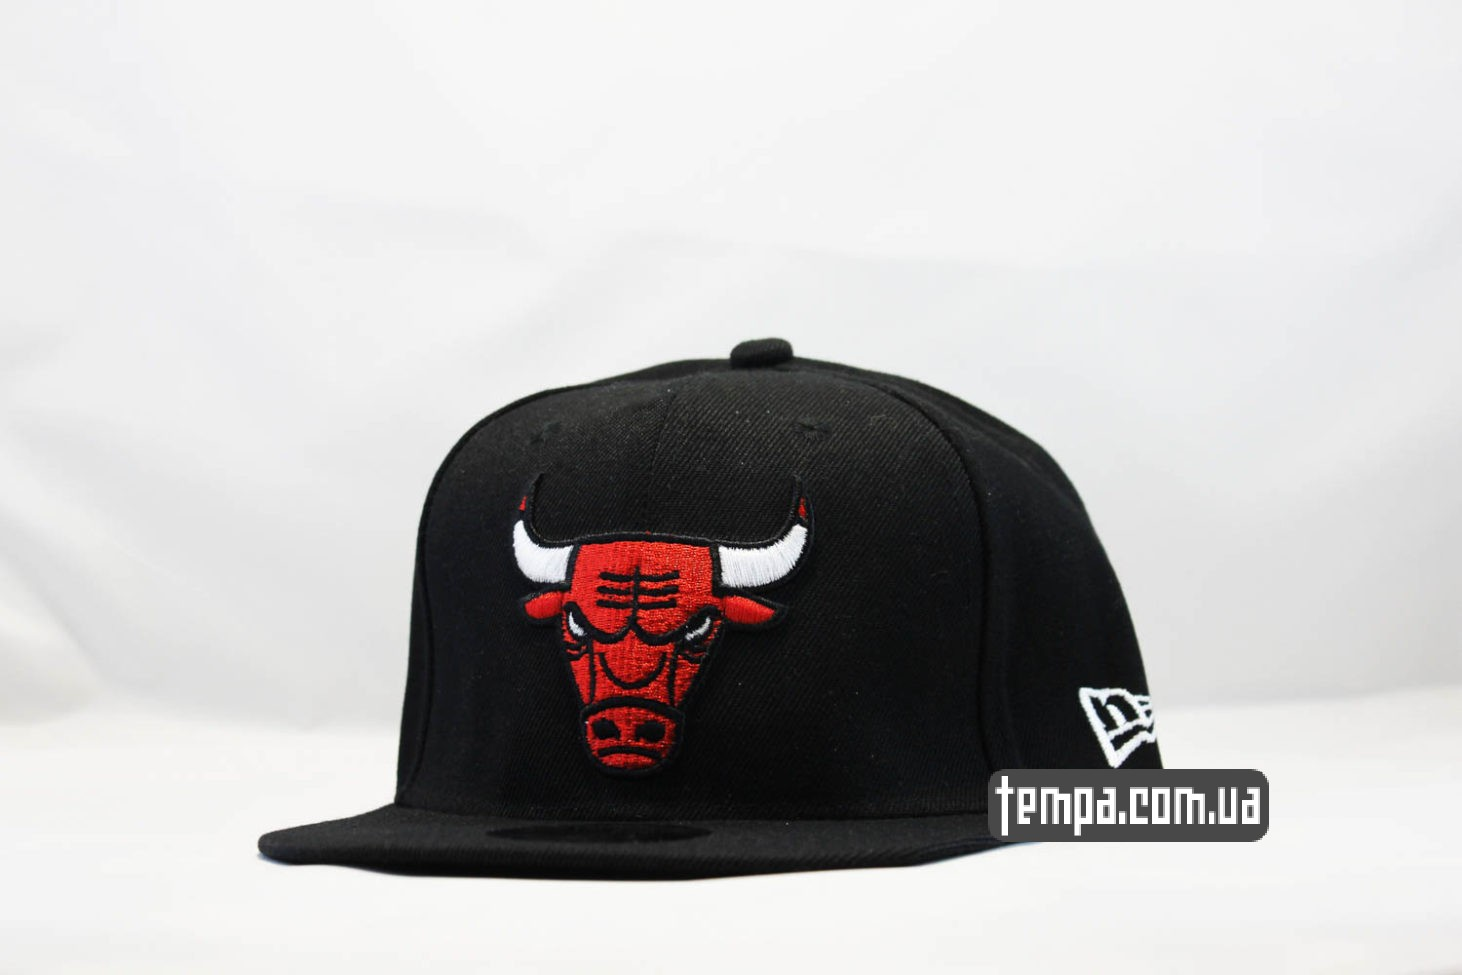 кепка snapback Chicago Bulls New Era 9fifty черная с быком